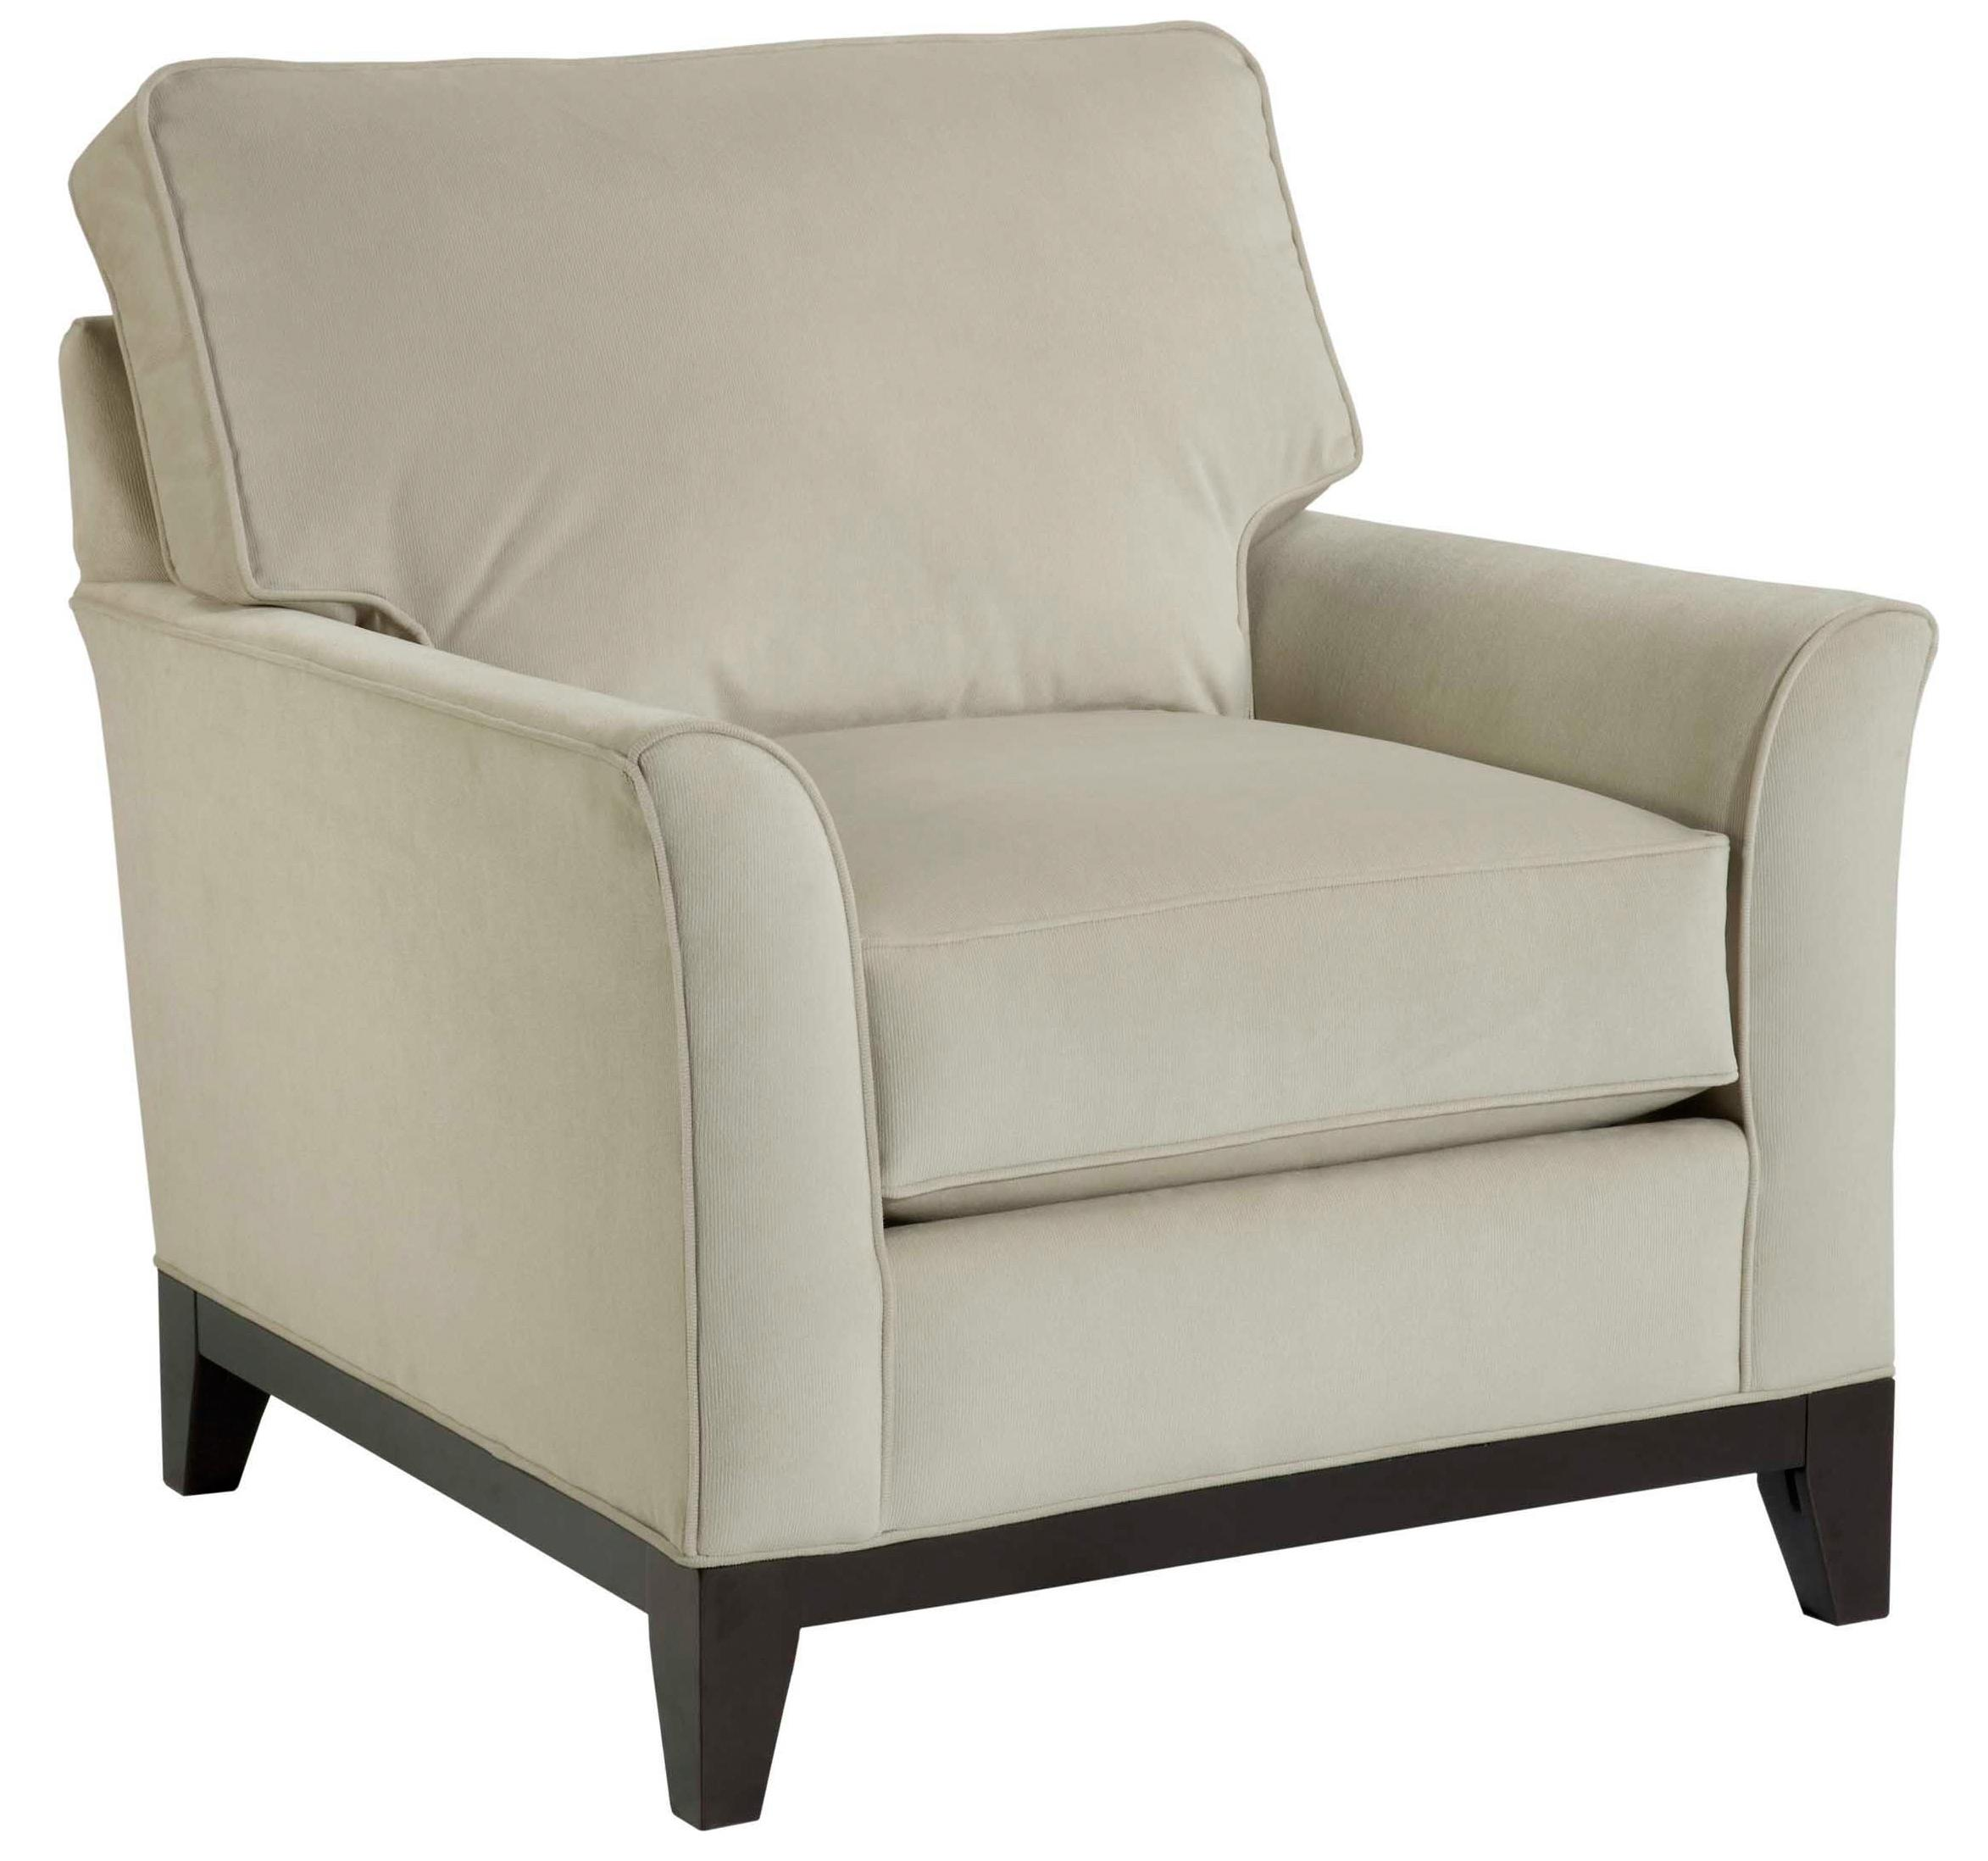 Broyhill Furniture Perspectives Stationary Chair - Item Number: 4445-0